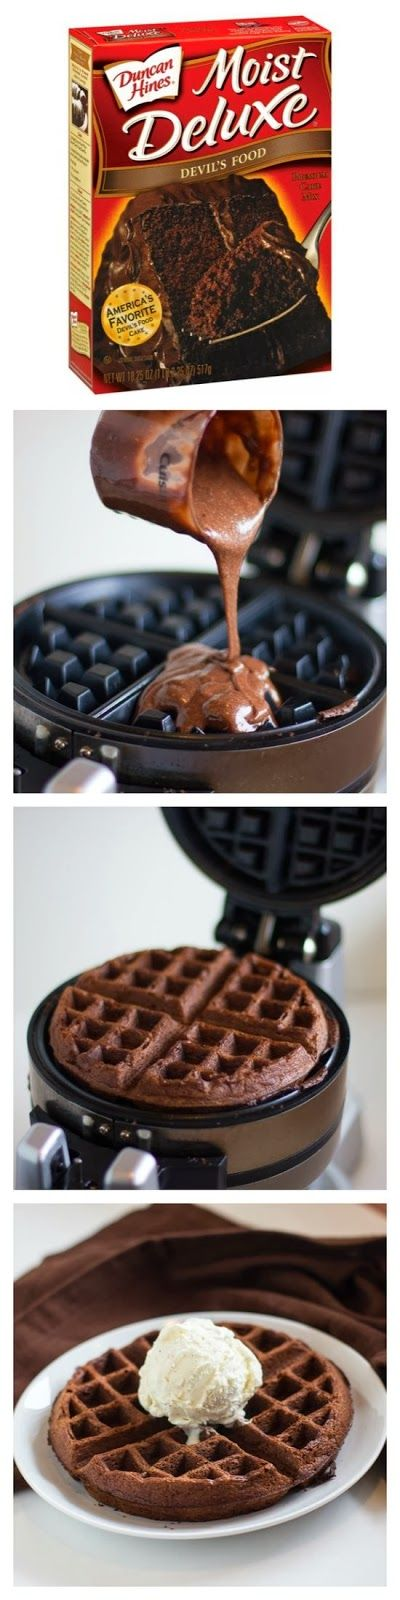 How To Cake Mix Waffles: just follow the recipe on the box. Very yummy, but not for breakfast!